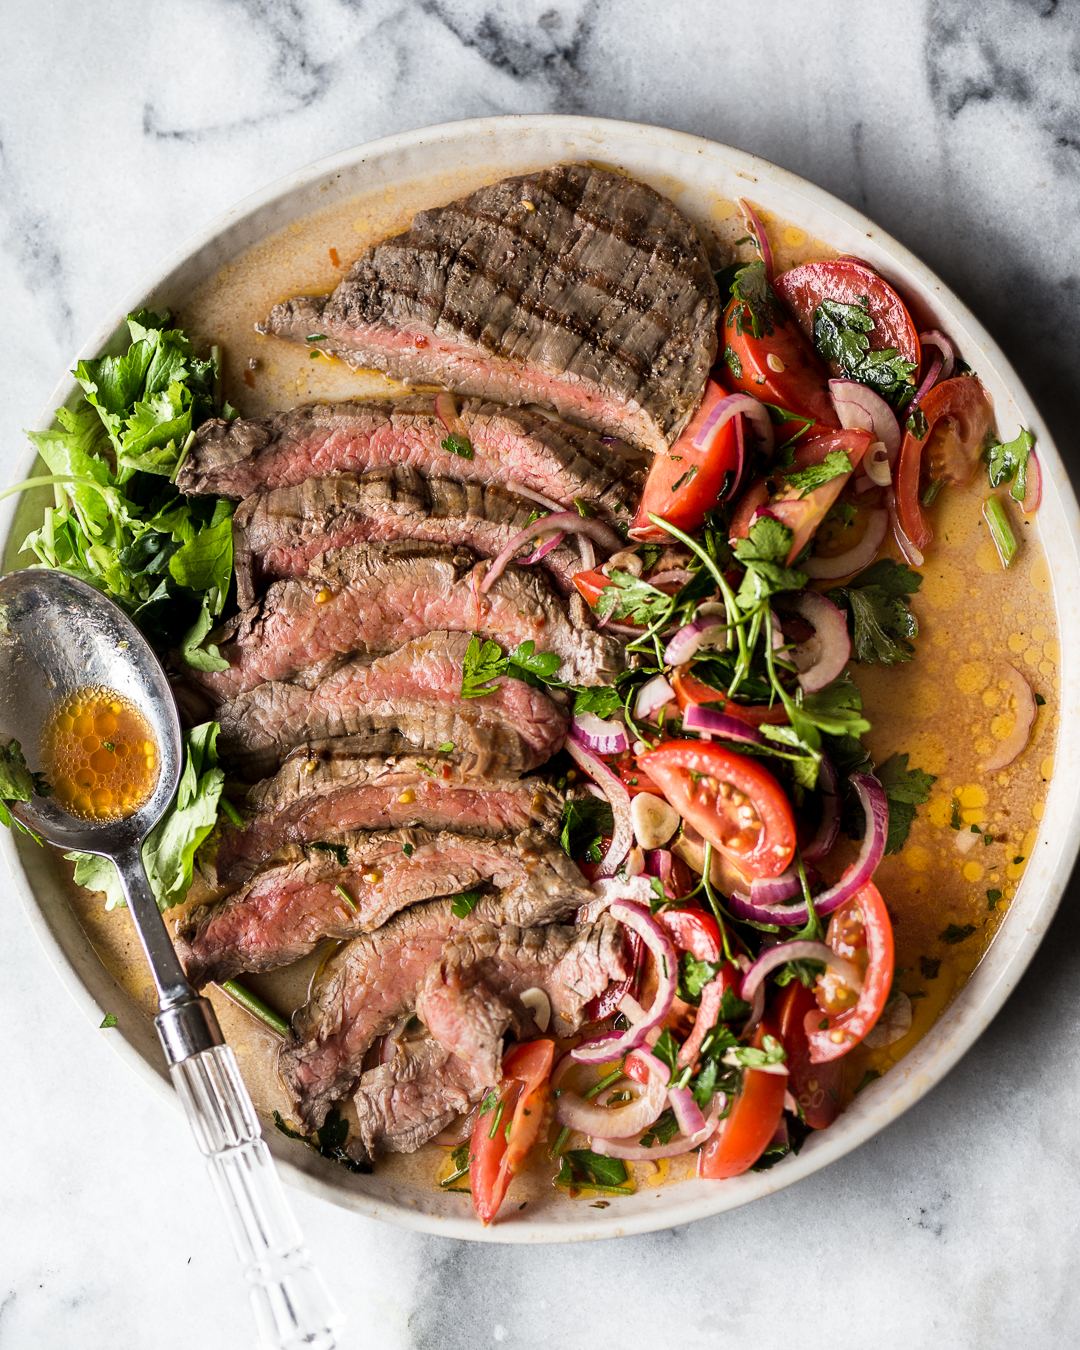 Grilled Flank Steak with Salsa Rustica